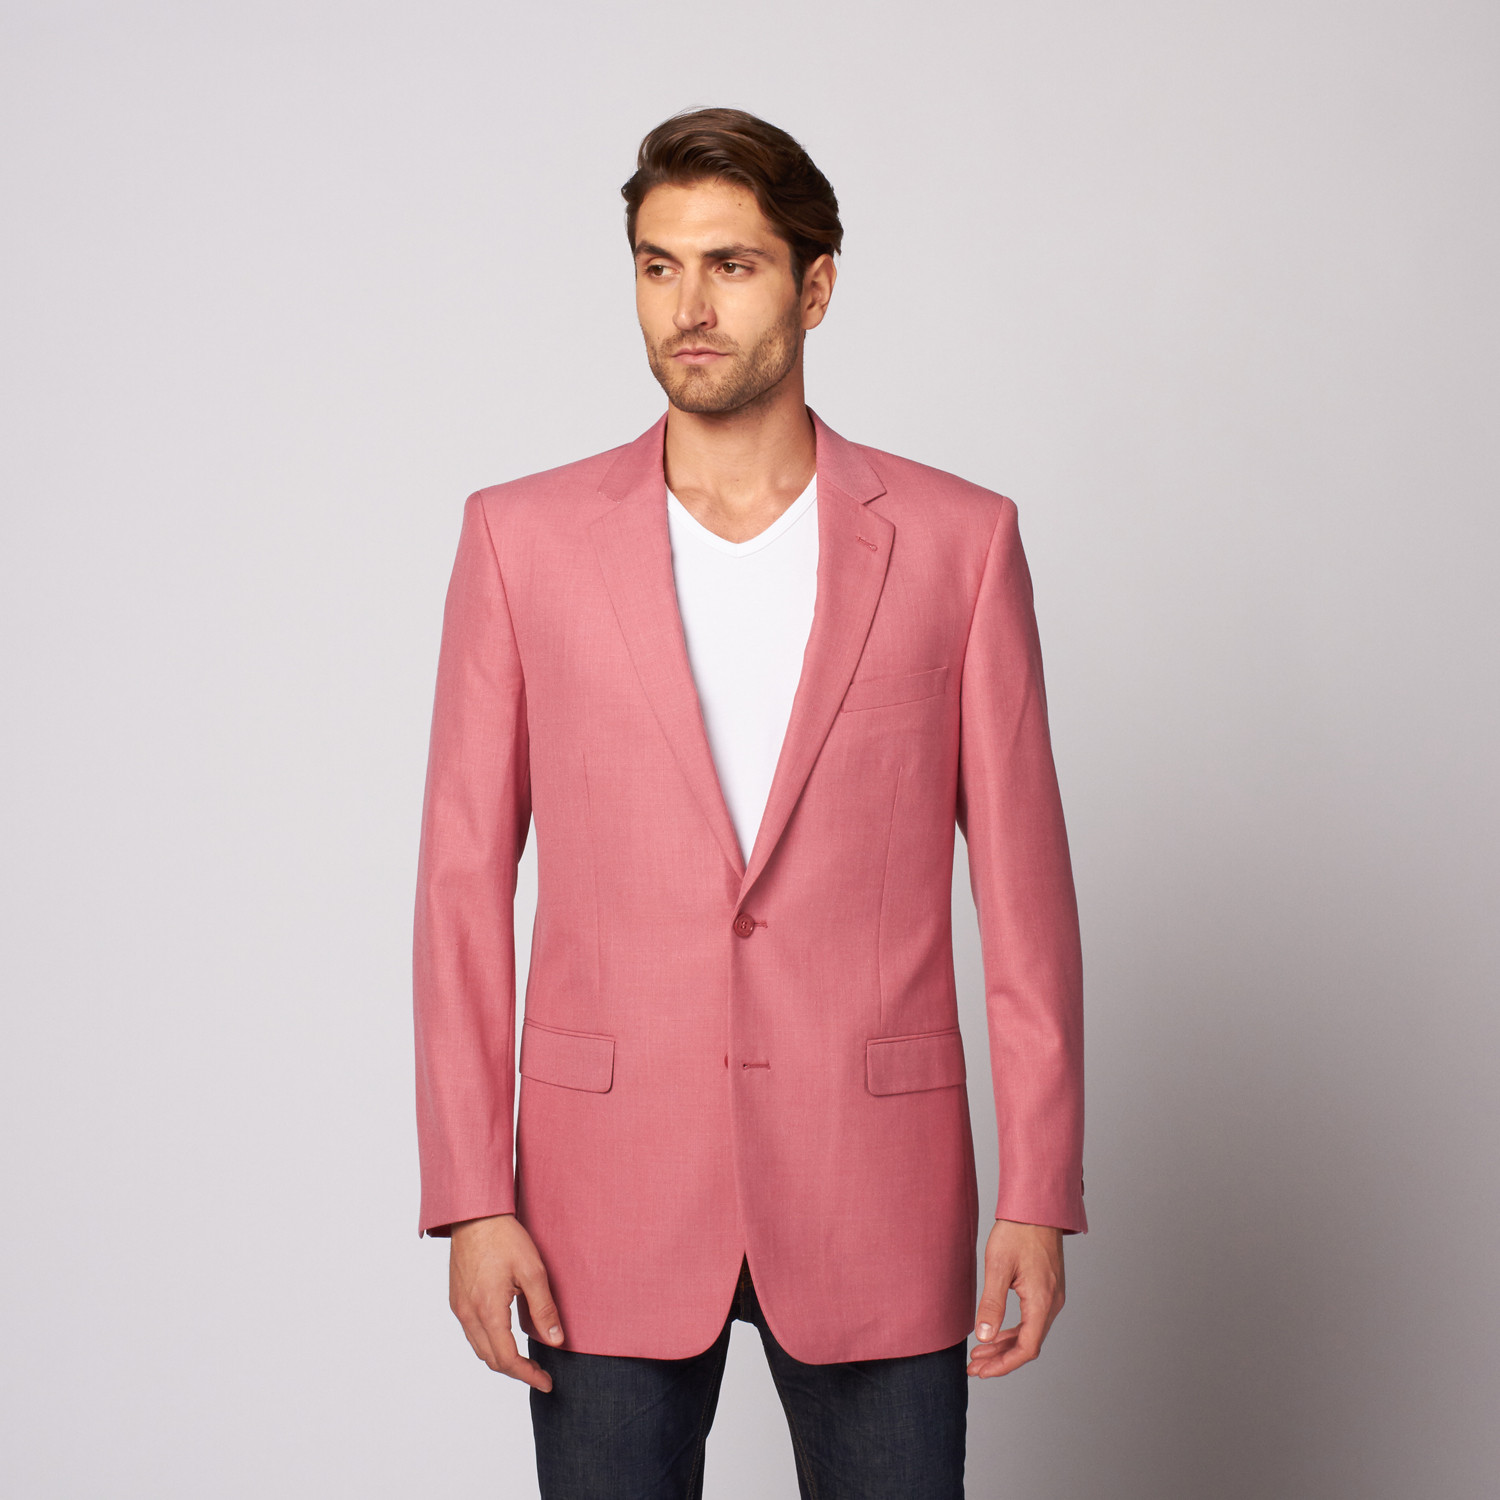 Zenbriele // Slim Fit Blazer // Light Red (US: 36R) - Last Grab ...